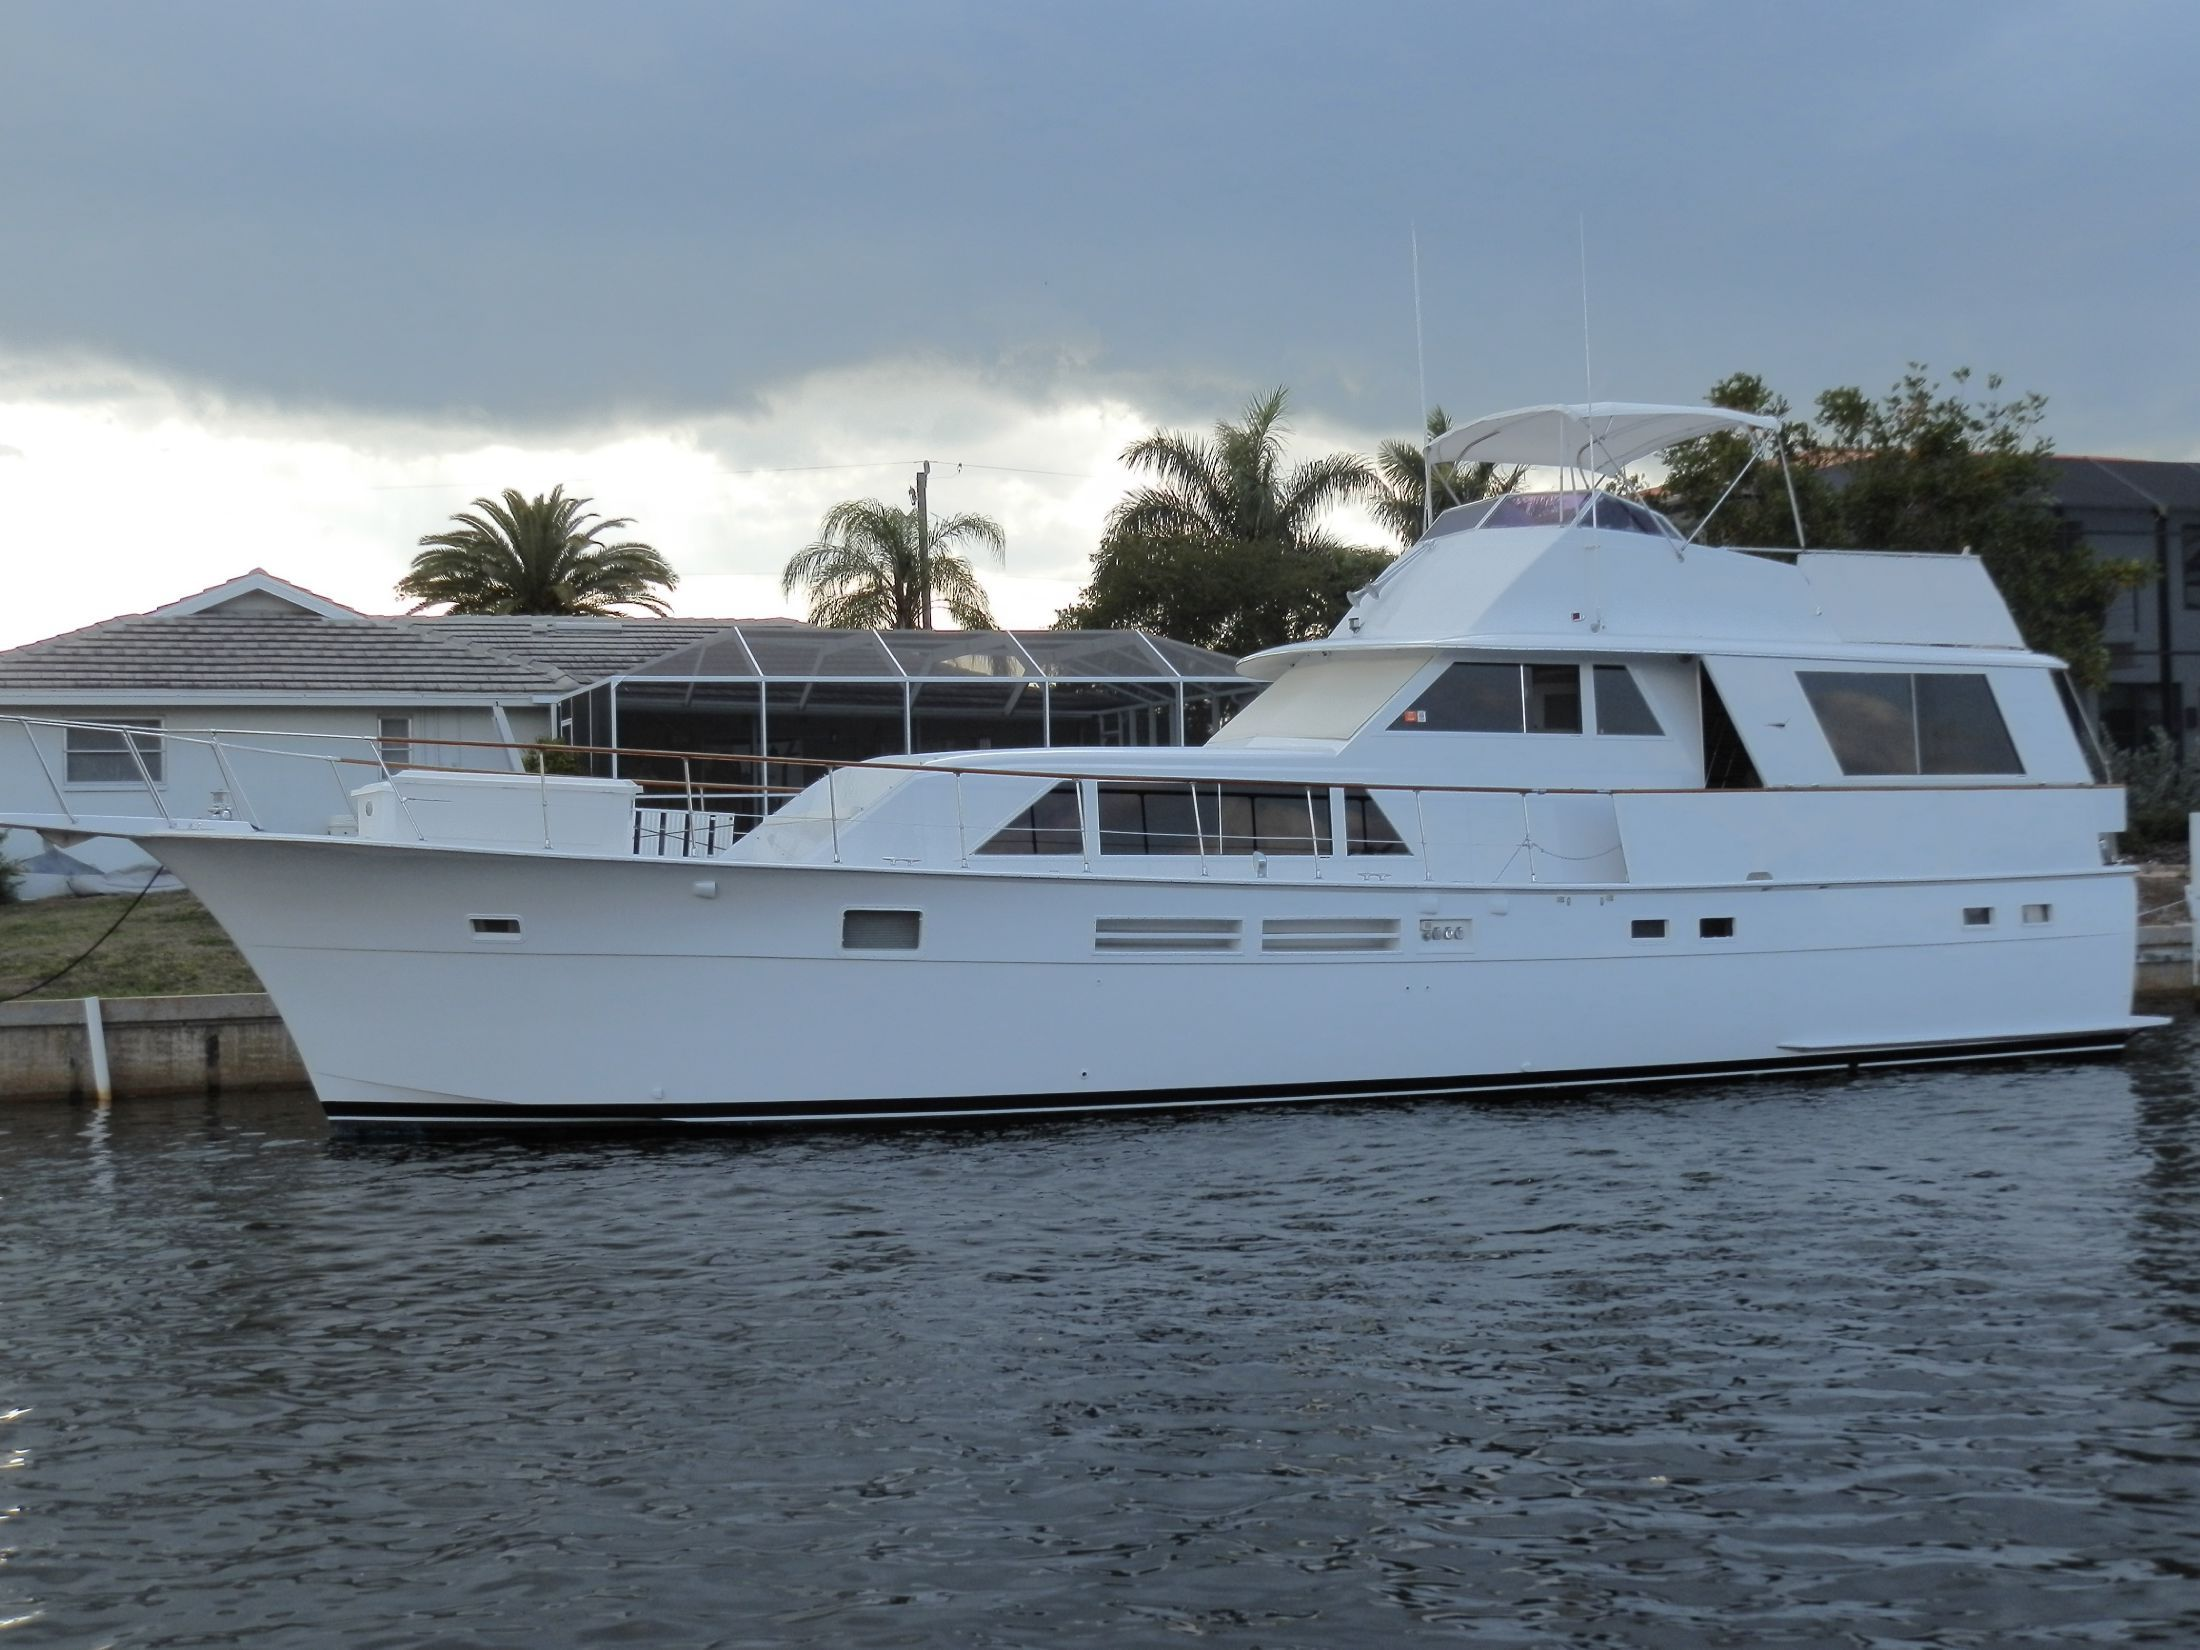 1975 hatteras 58 motor yacht power boat for sale www